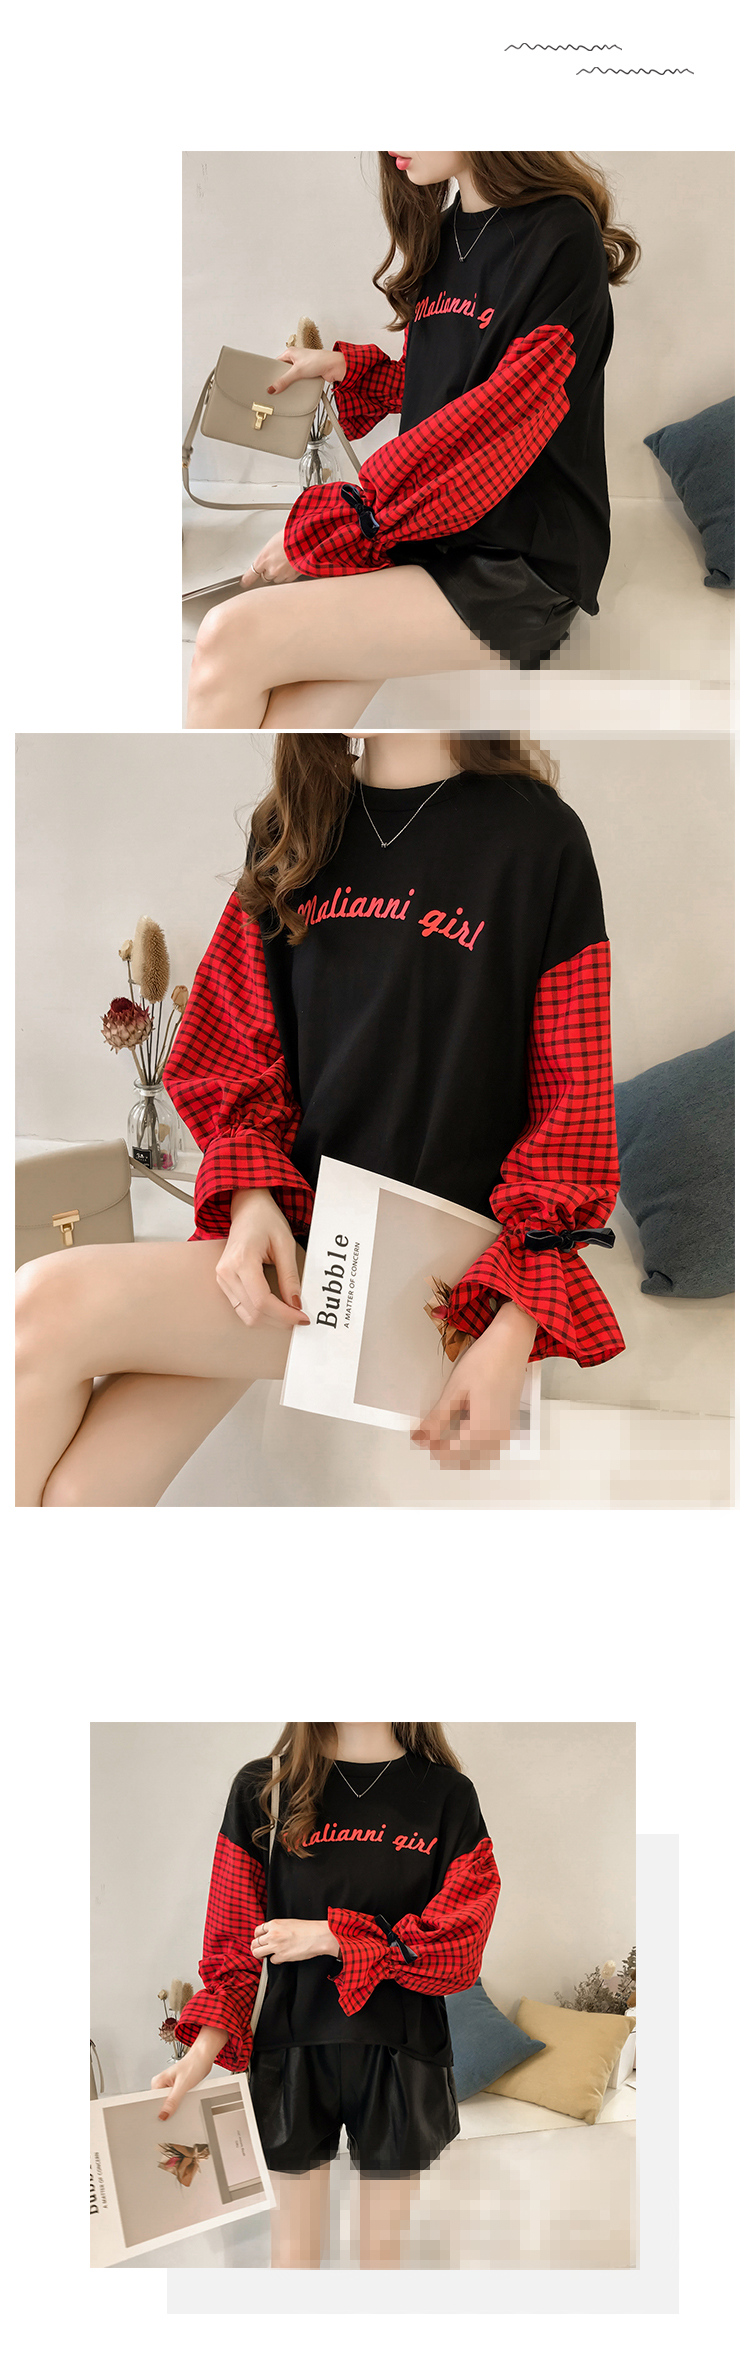 M-4xl Plus Size Cotton Casual T-shirts Women Plaid Patchwork Flare Sleeve O-neck Tshirts Harajuku Fake Two Piece Loose Tees Tops 17